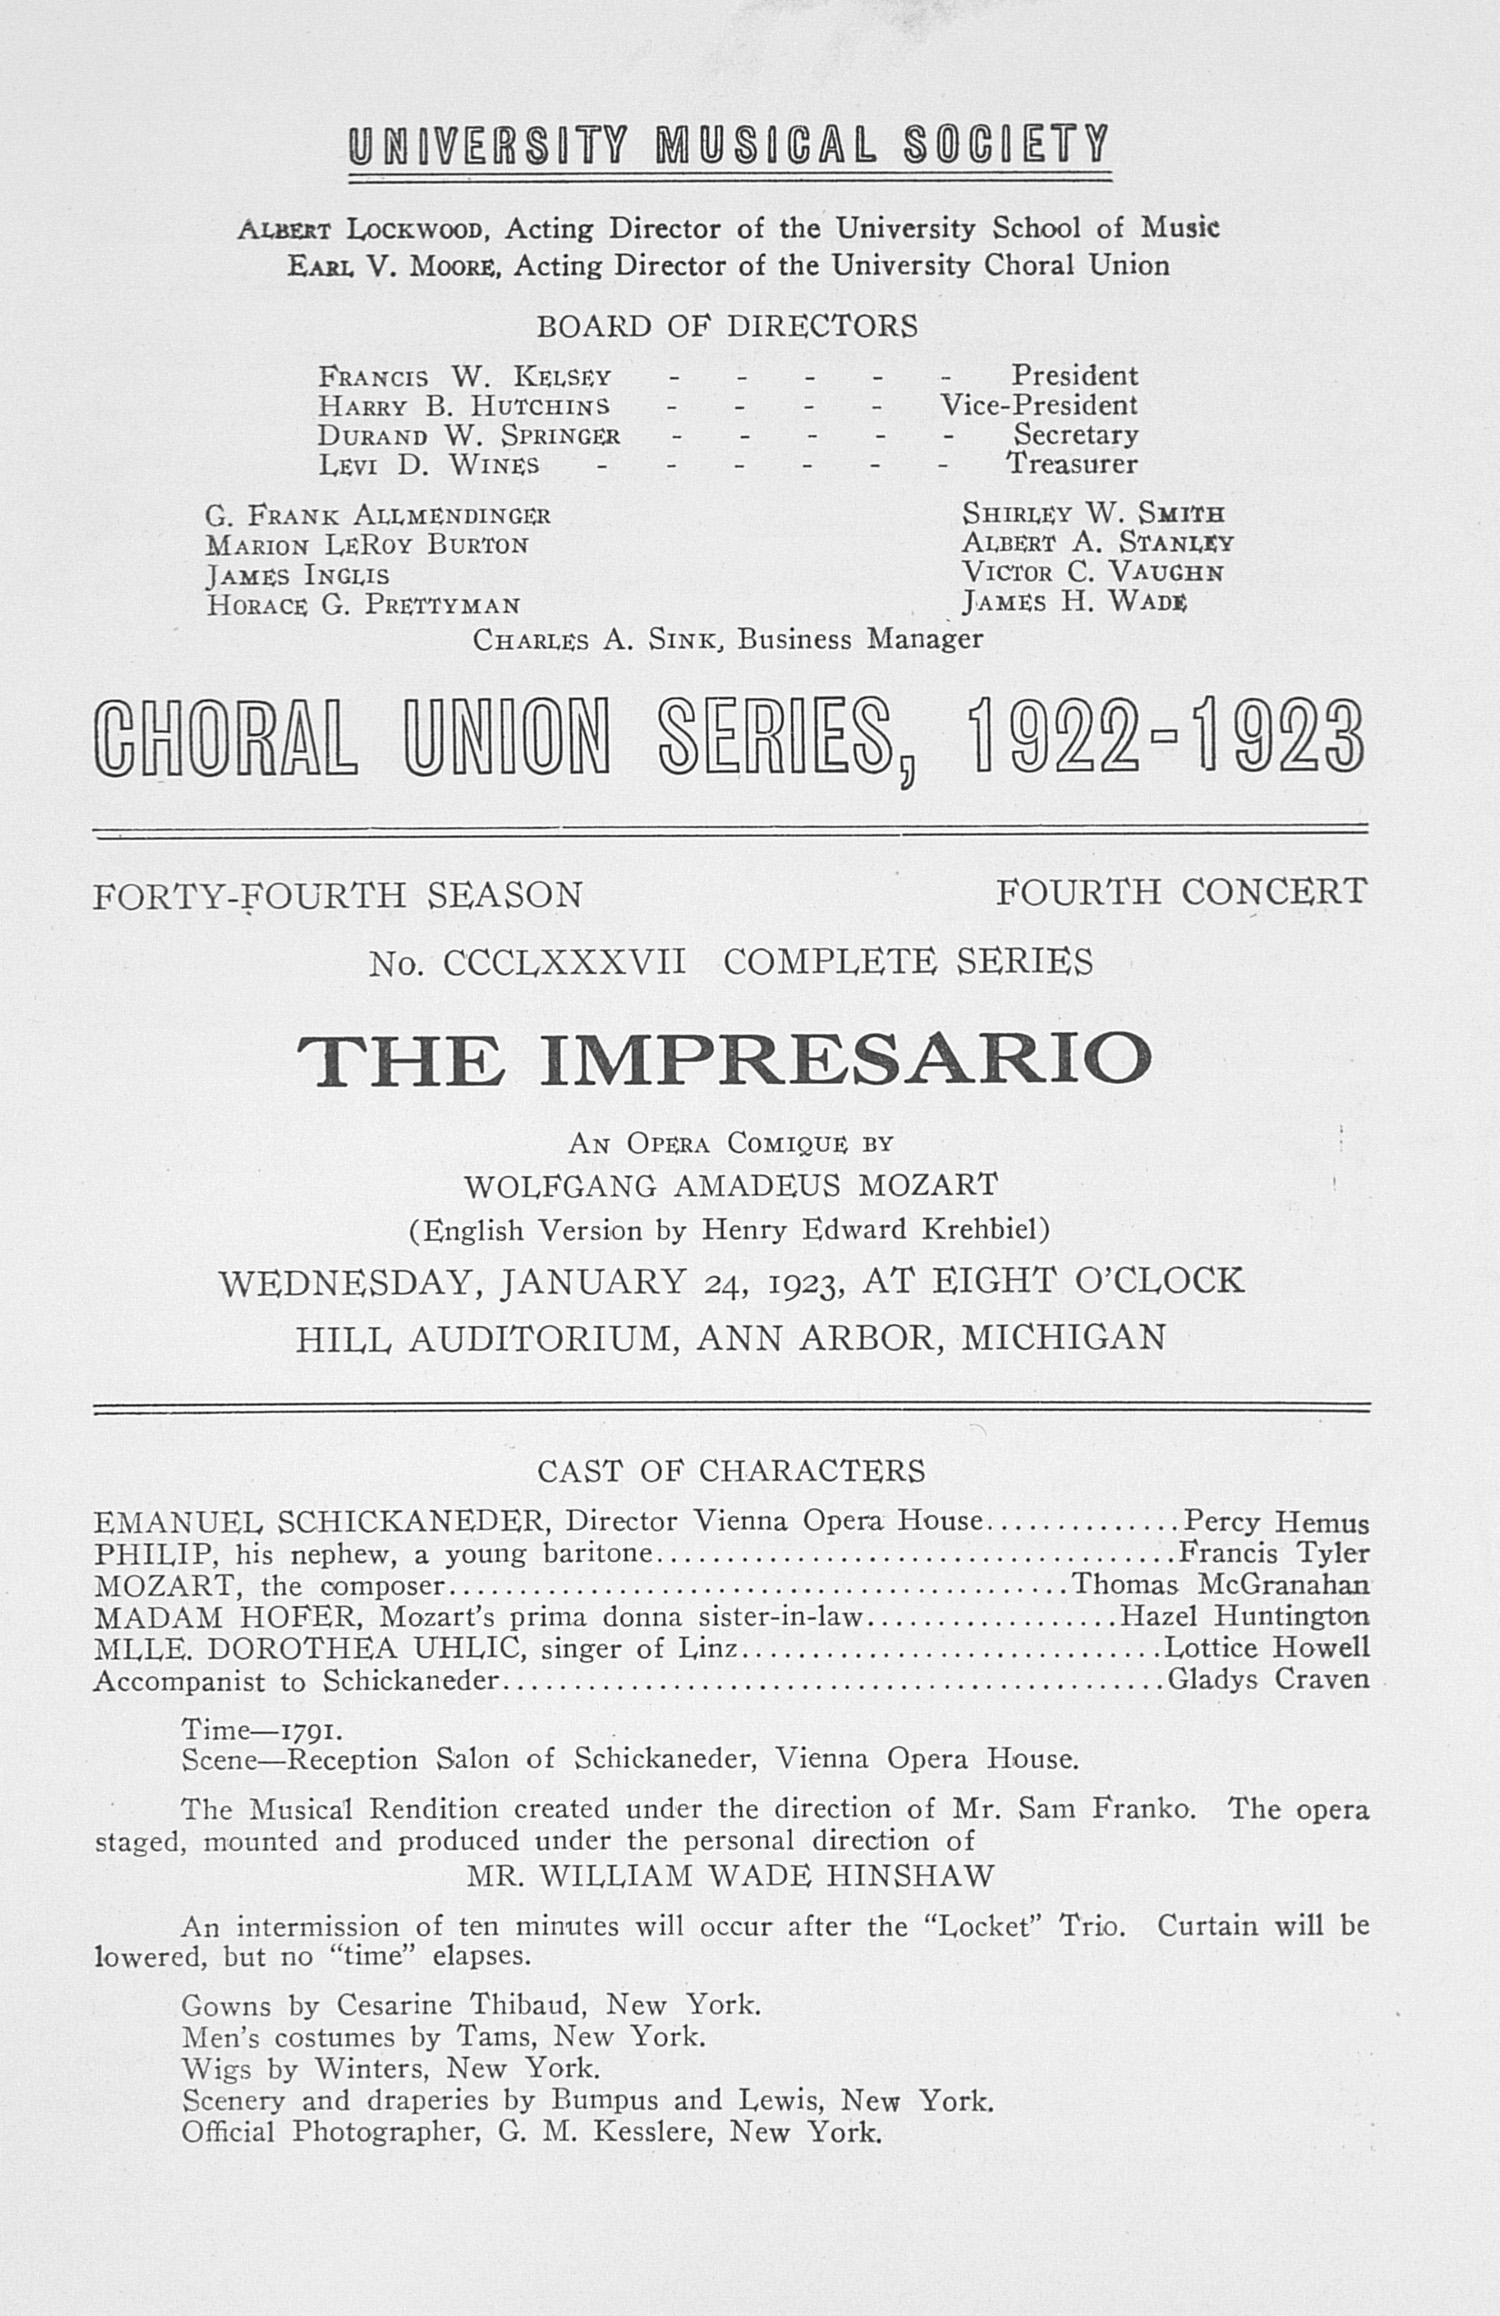 UMS Concert Program, January 24, 1923: The Impresario -- Wolfgang Amadeus Mozart image